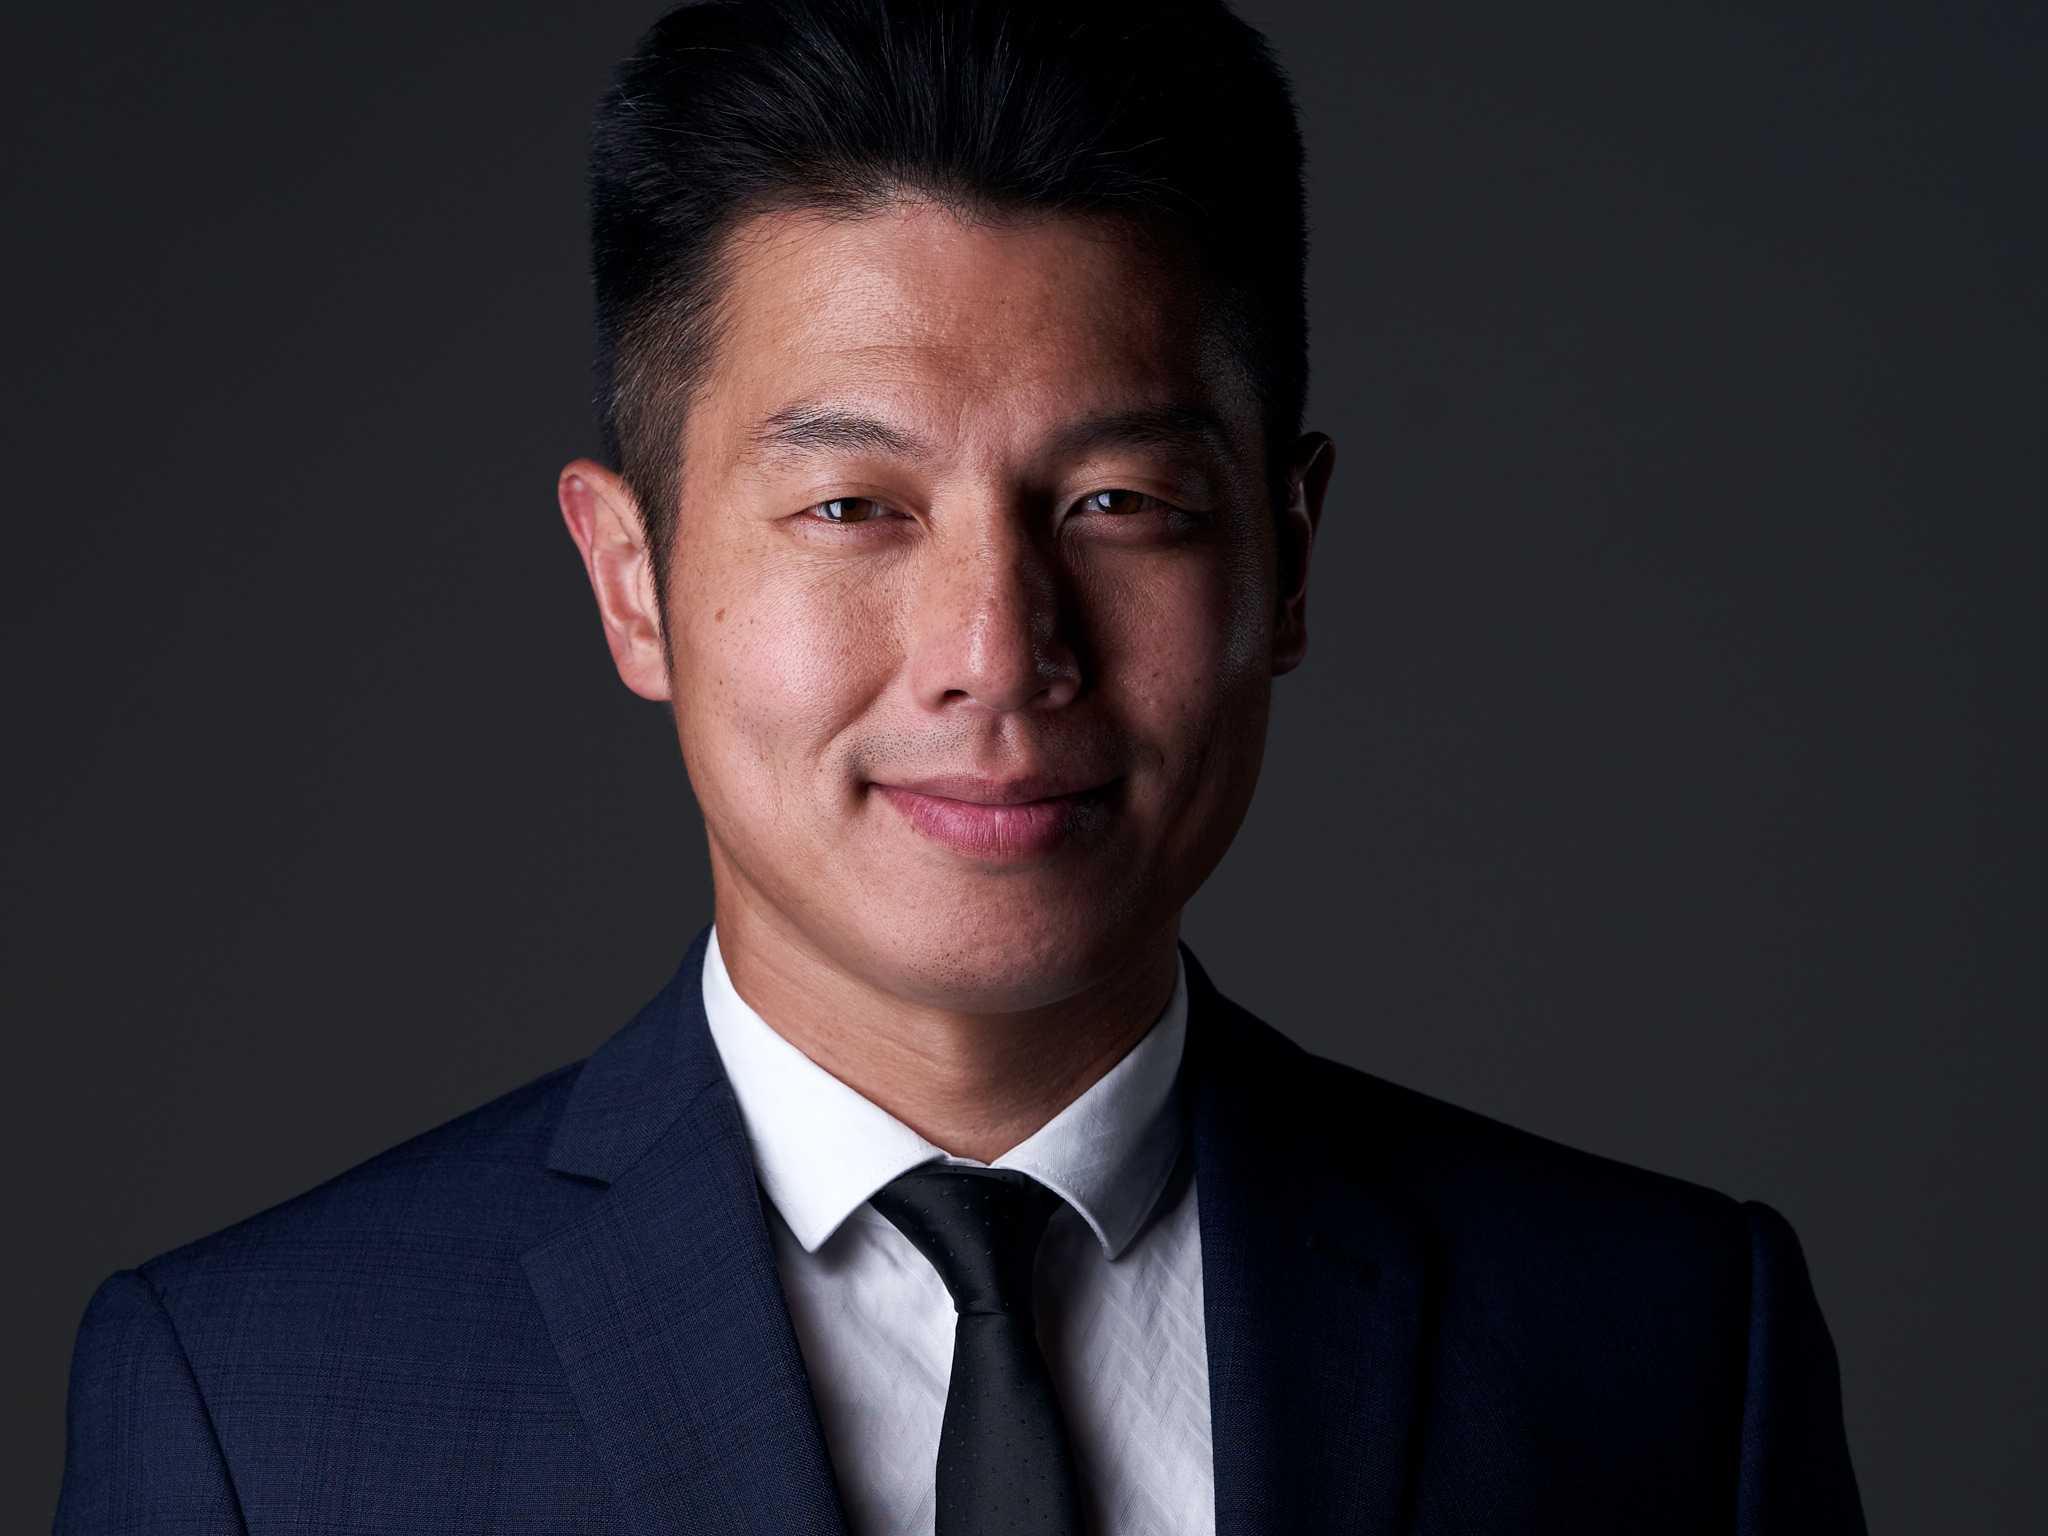 Asian male corporate headshot